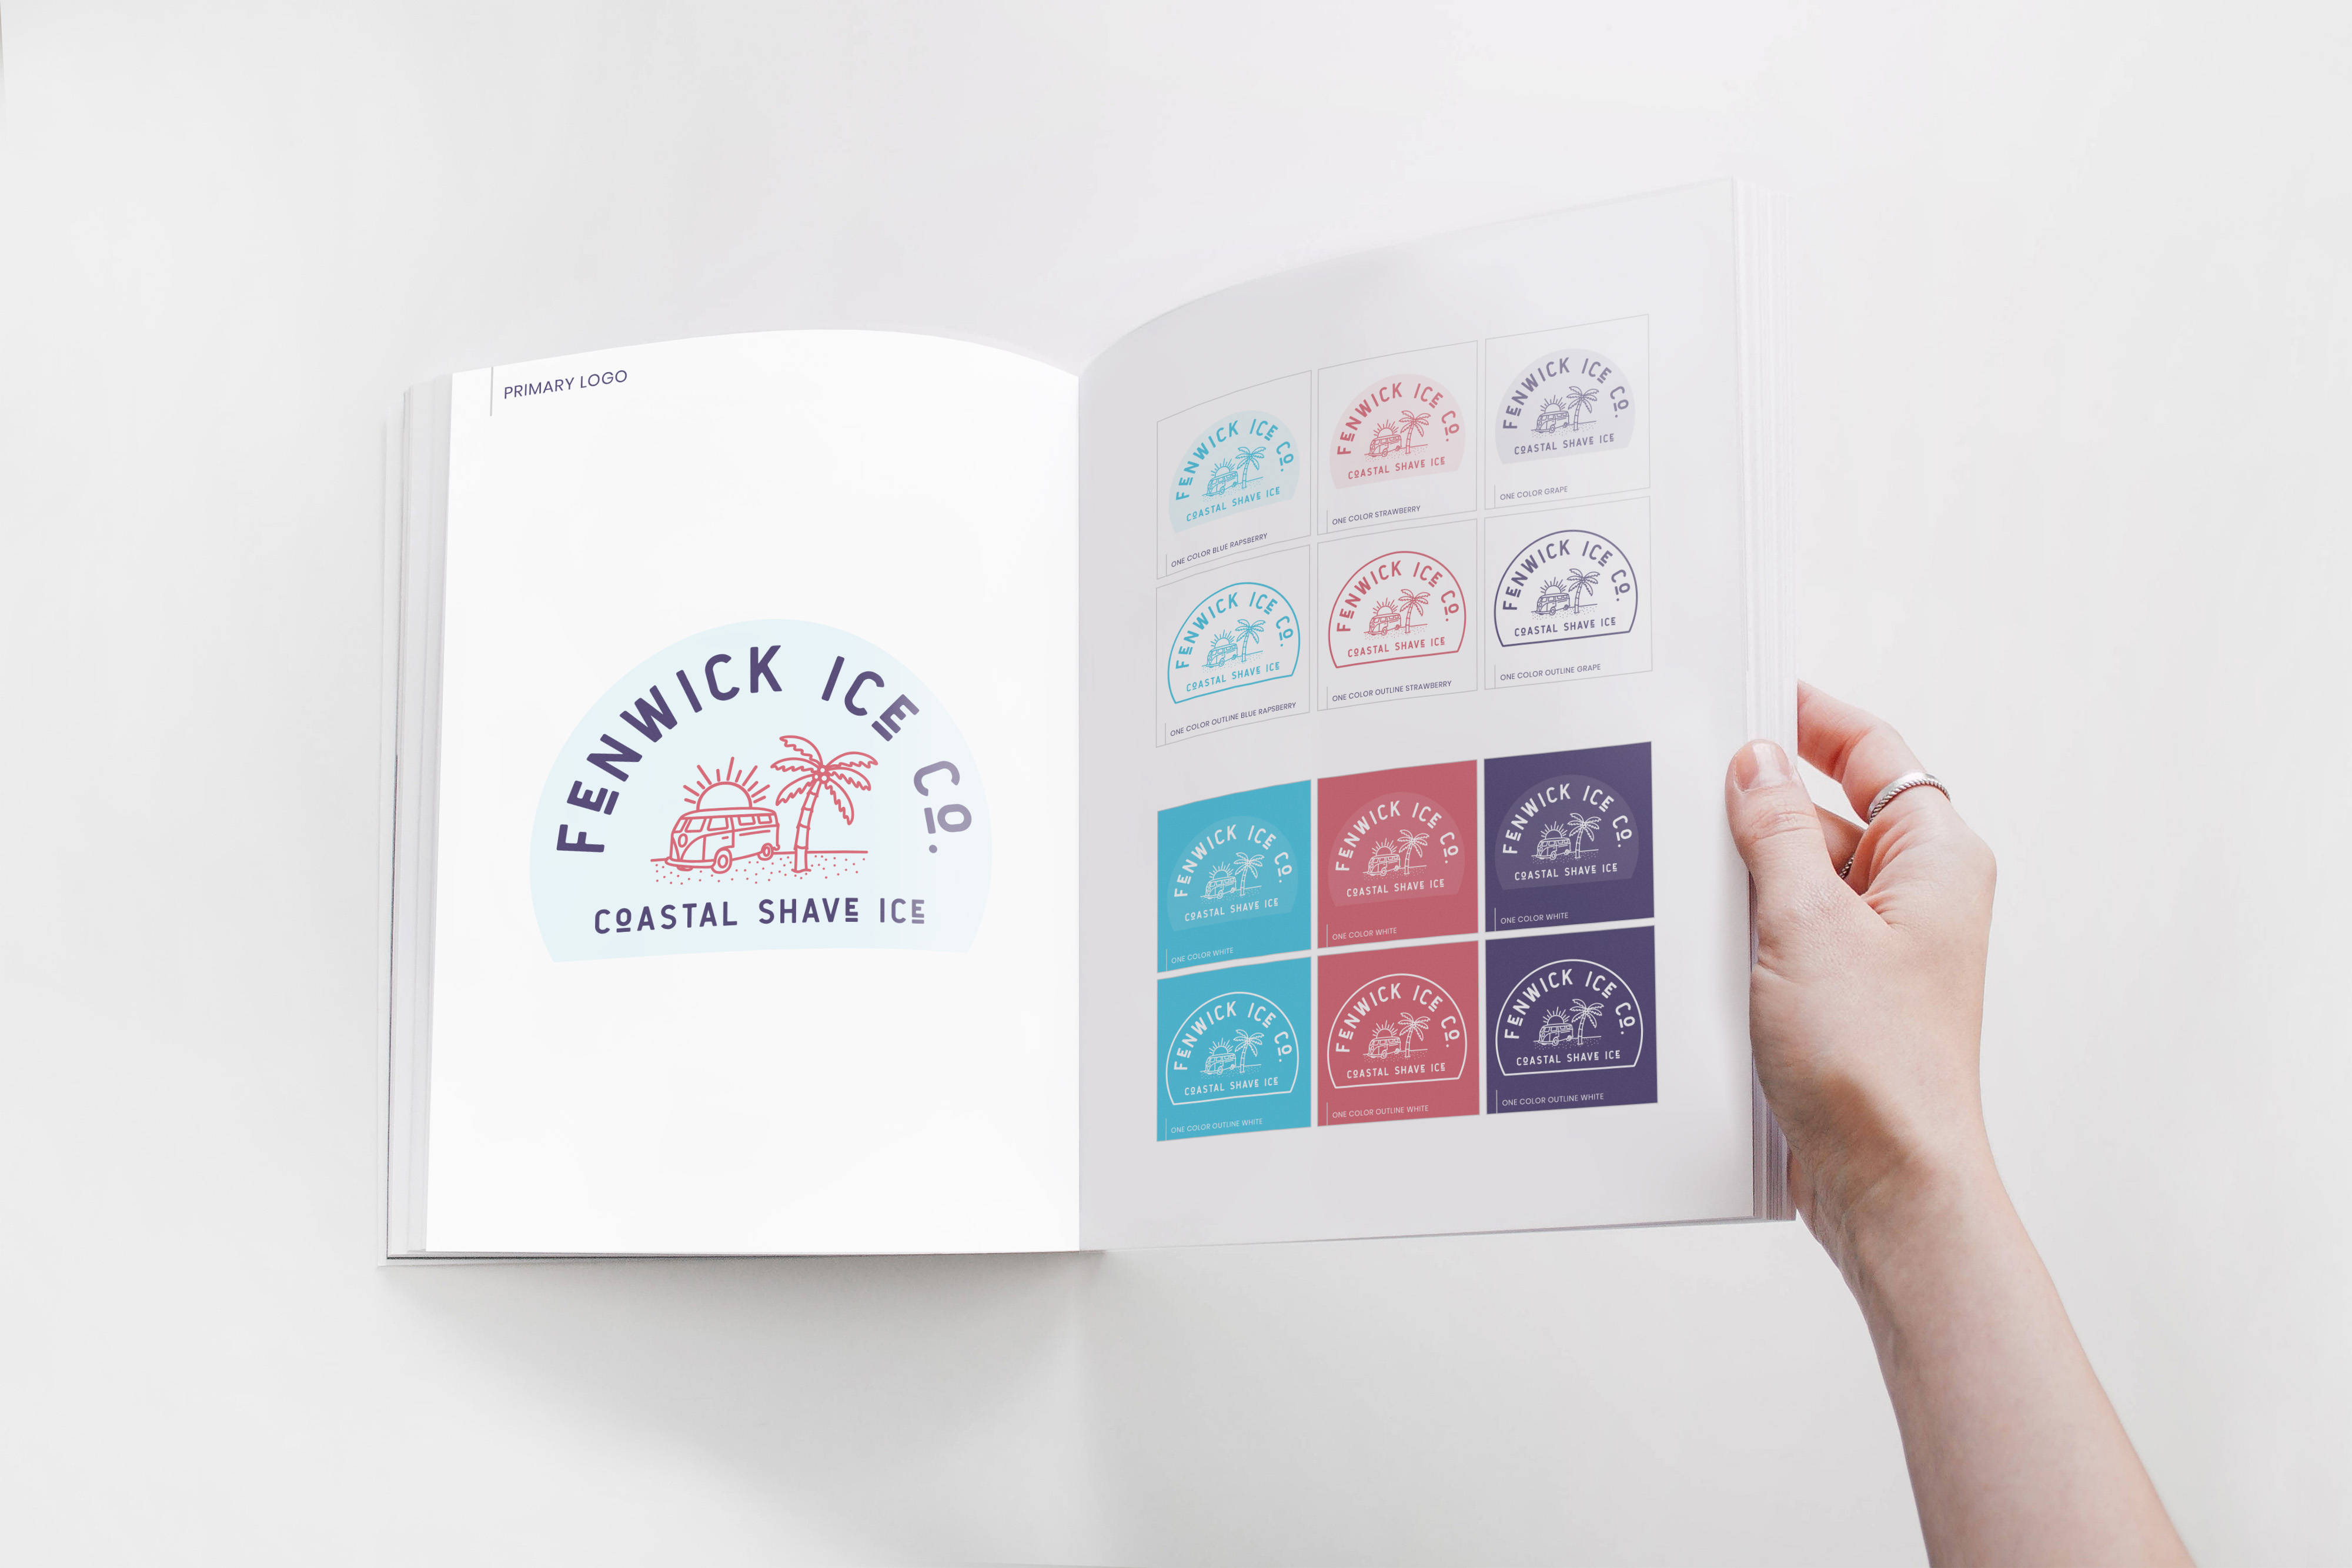 fenwick ice logo shown in full color and one color and white options in a brand book held open by a woman